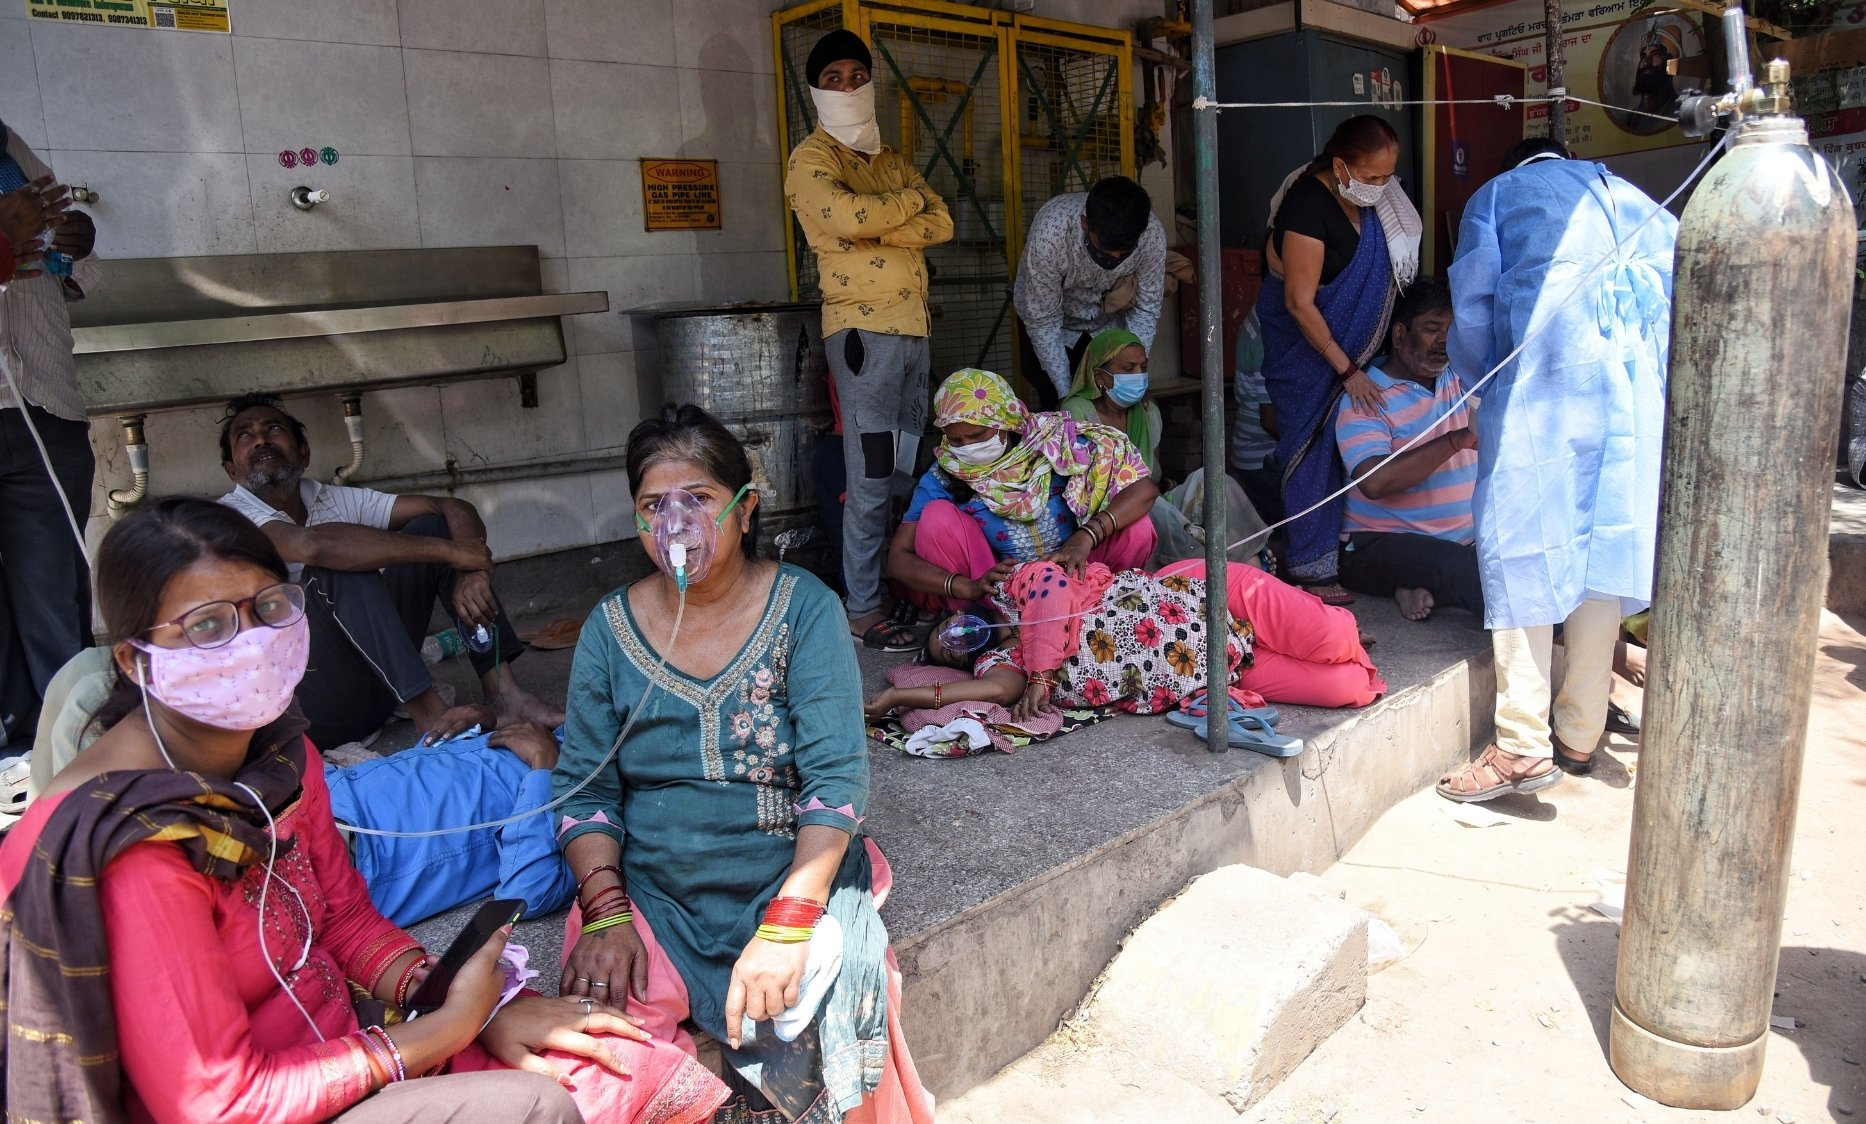 Delhi Hospitals helpless; Undeclared emergency takes country by storm - COVID-19 News - Digpu News